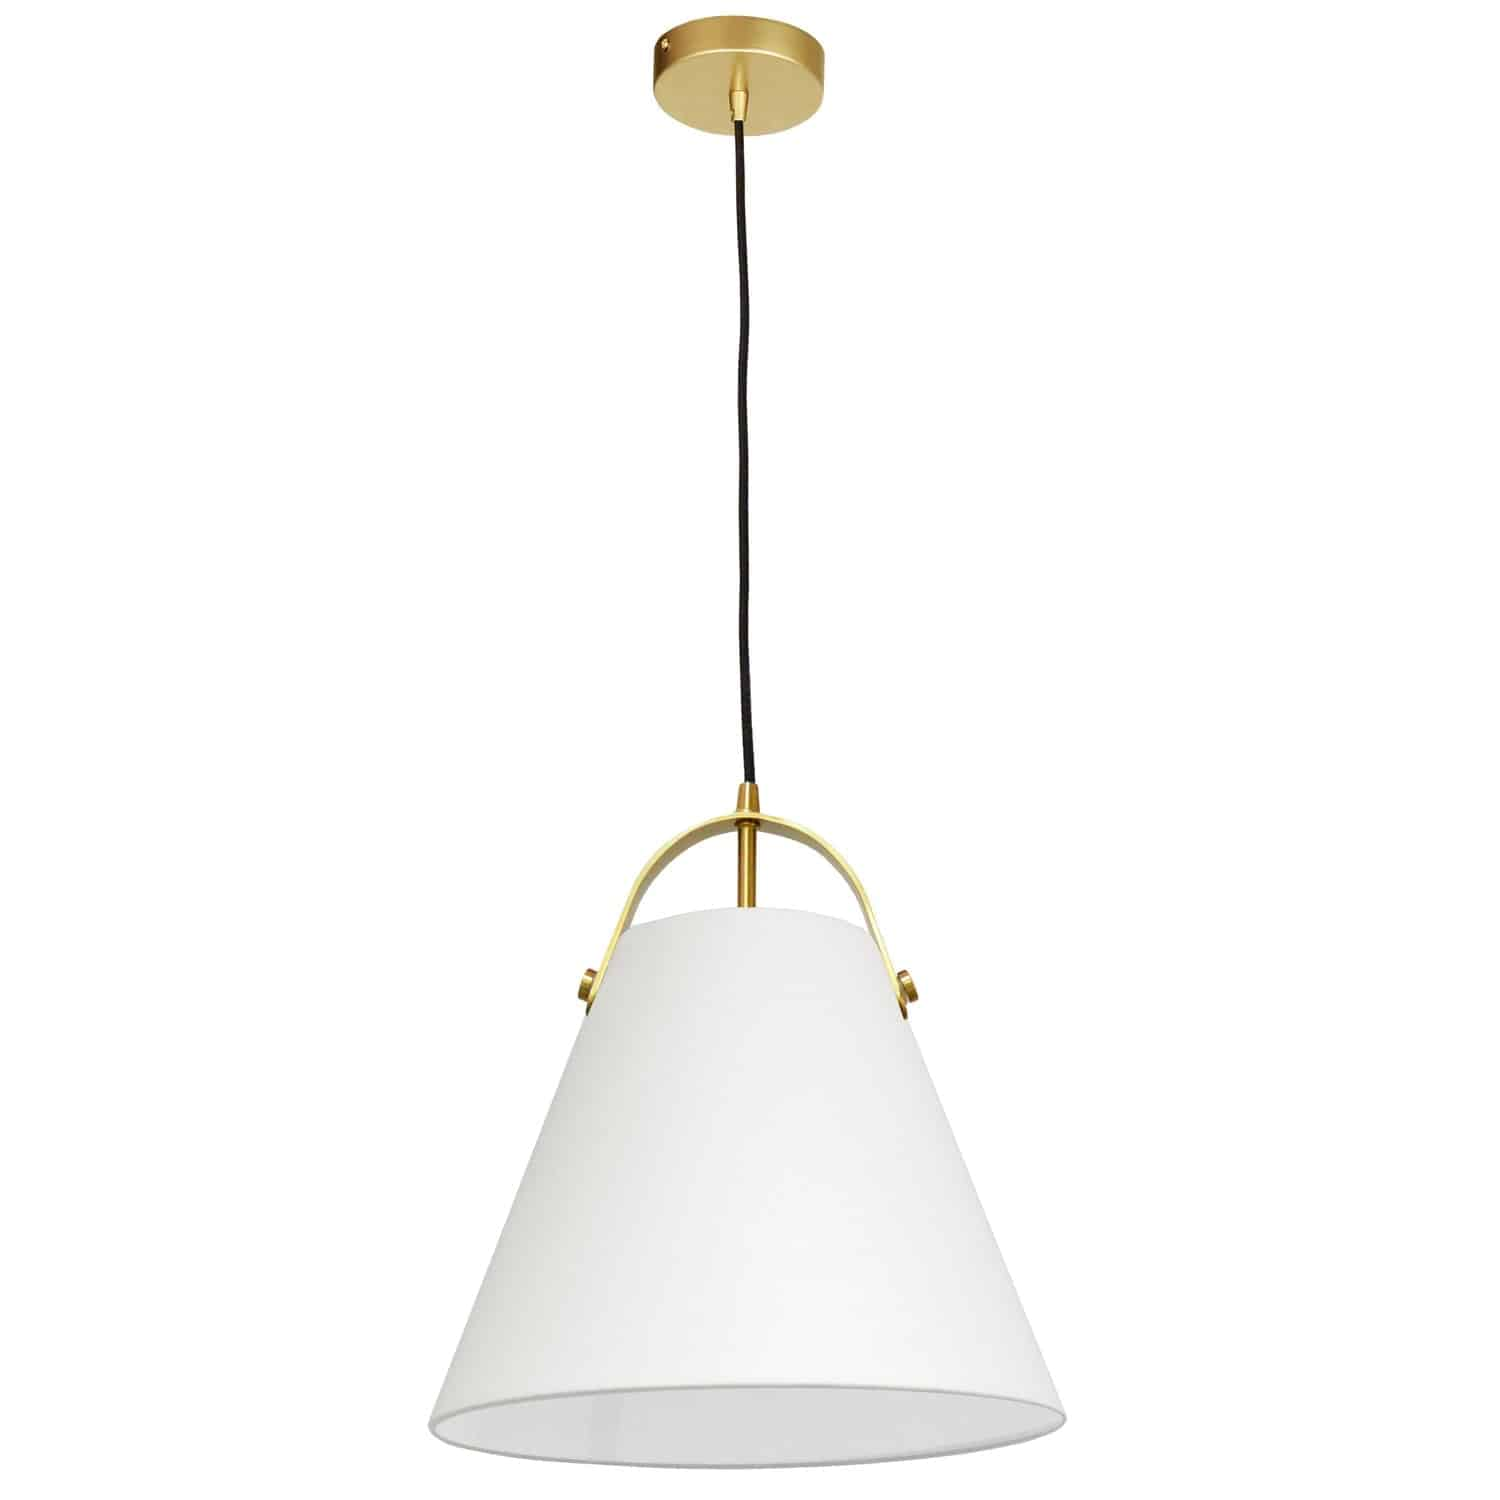 1 Light Emperor Pendant Aged Brass with Off White Shade